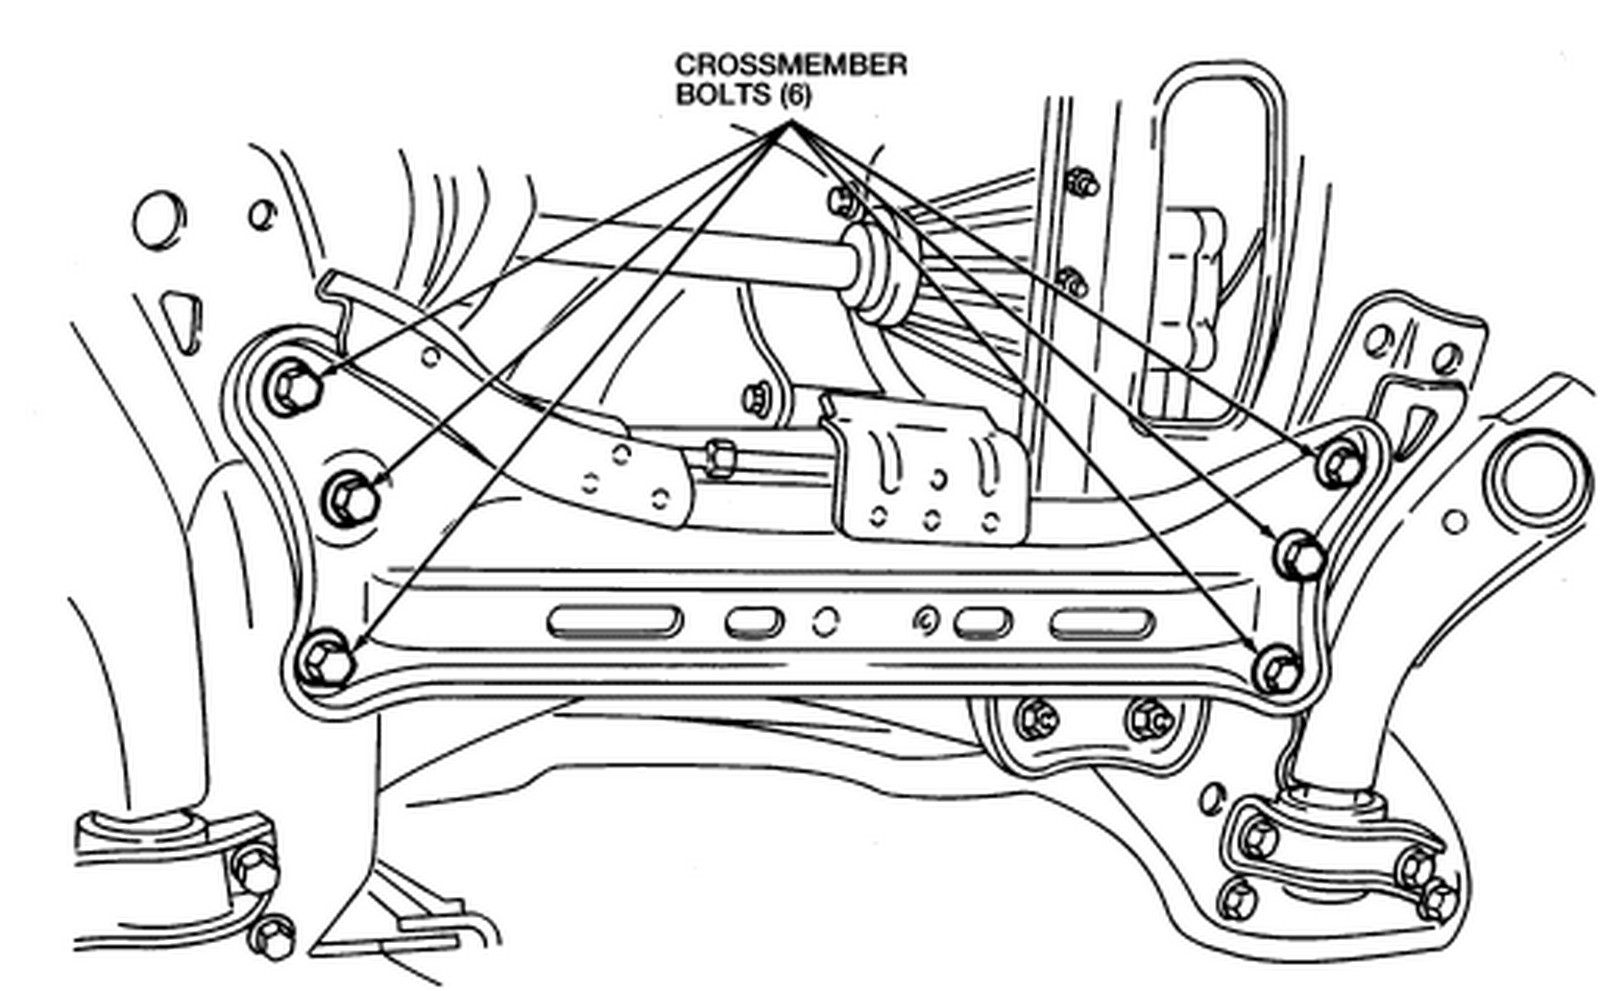 Mx 420 Service Manual Auto Electrical Wiring Diagram Craftsman Electric 3 In 1 Lawn Mower Schematics Model 900370510 How To Replace 2001 1994 Ford Probe